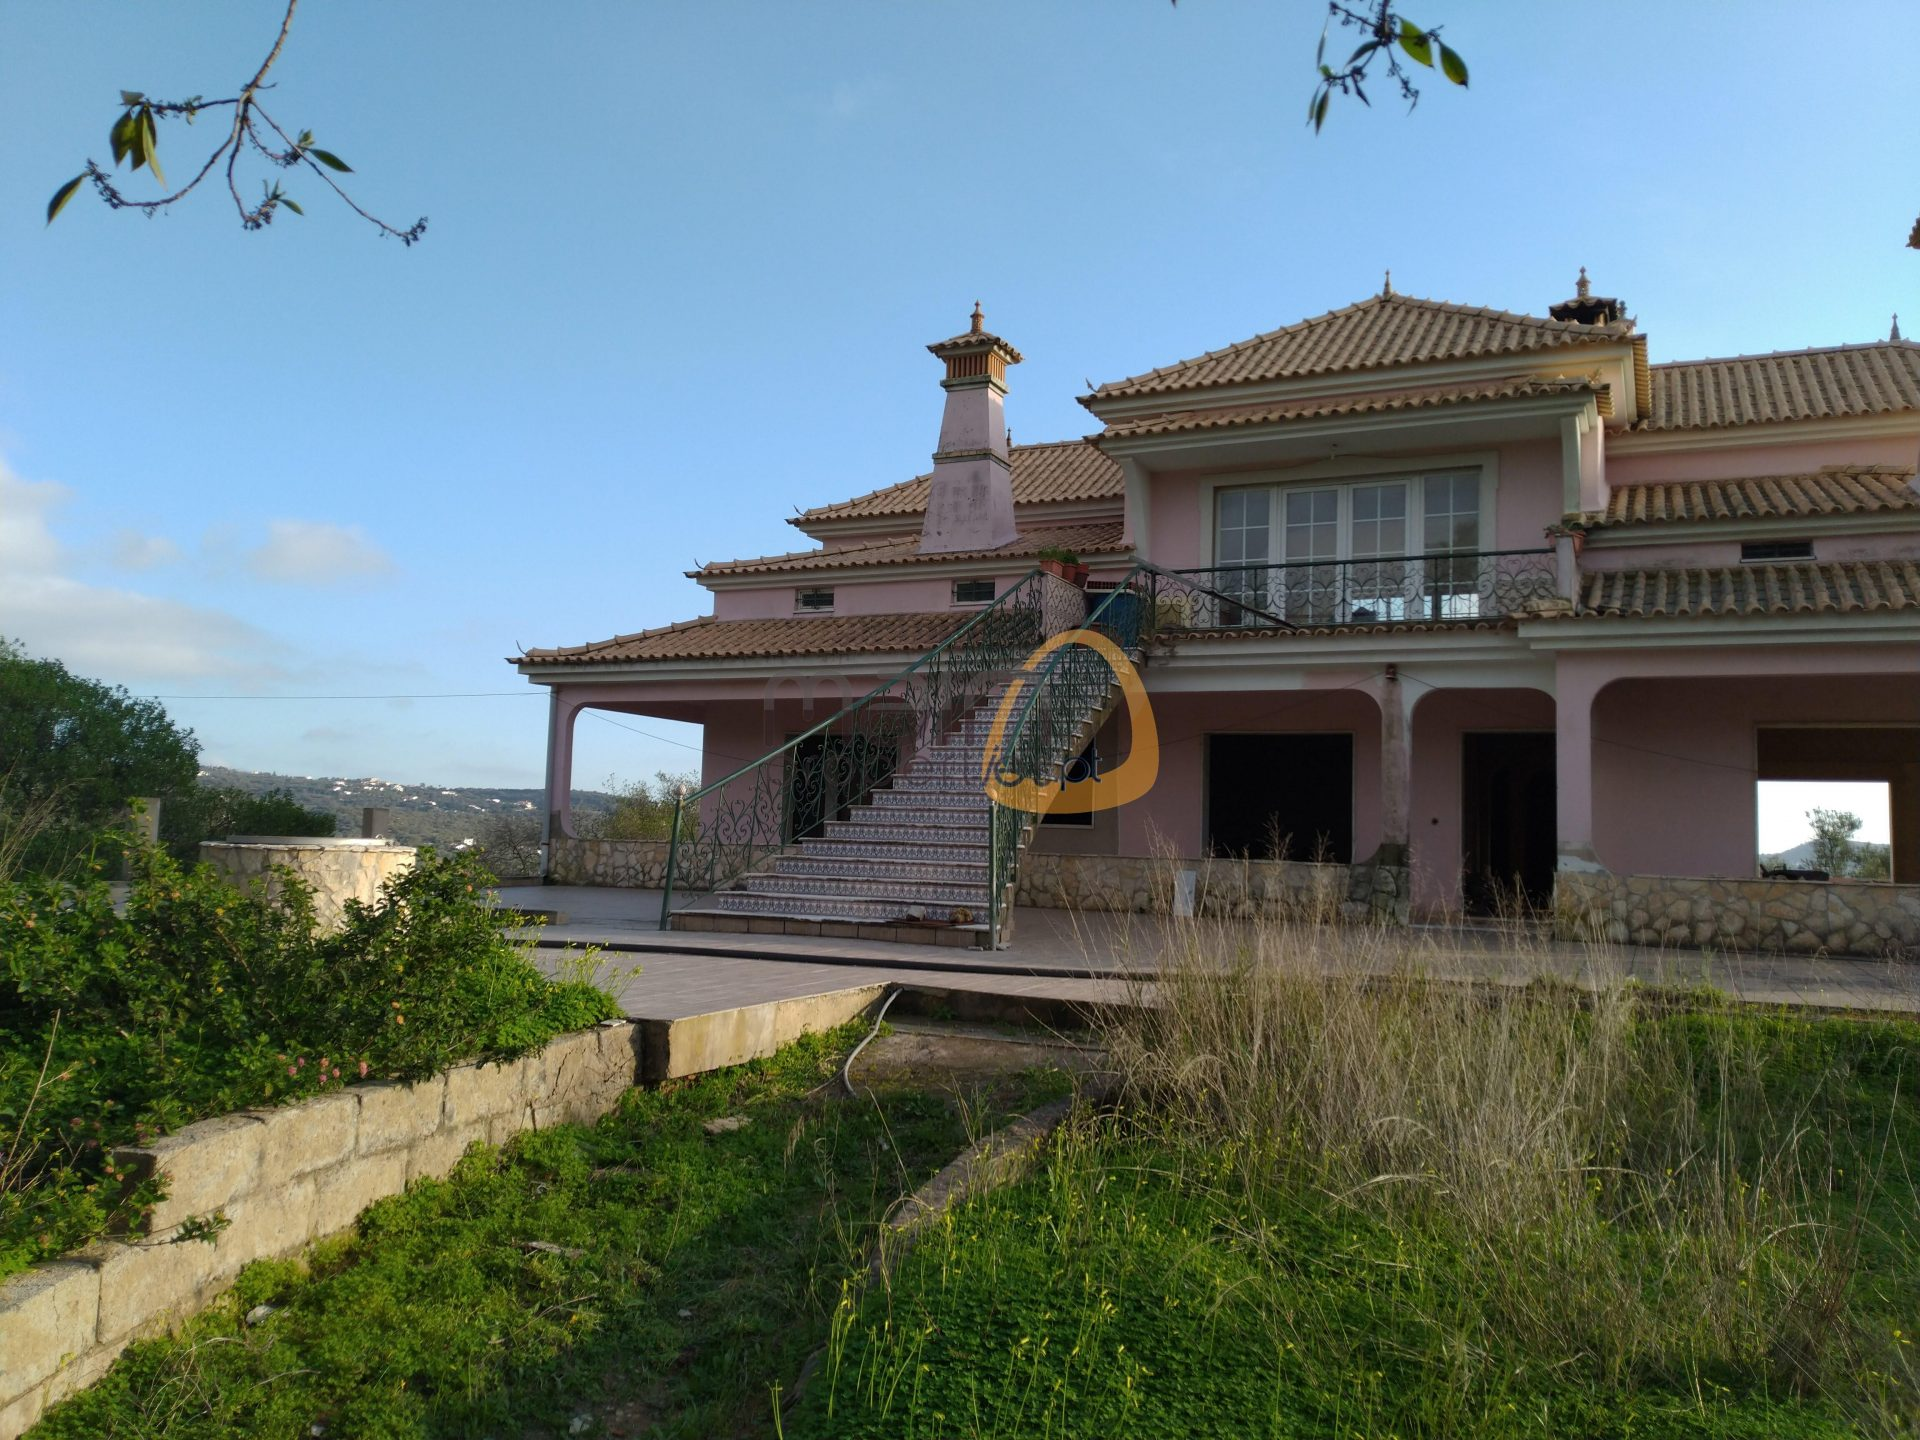 Unfinished 6 bedroom villa with extensive land area in Loulé.